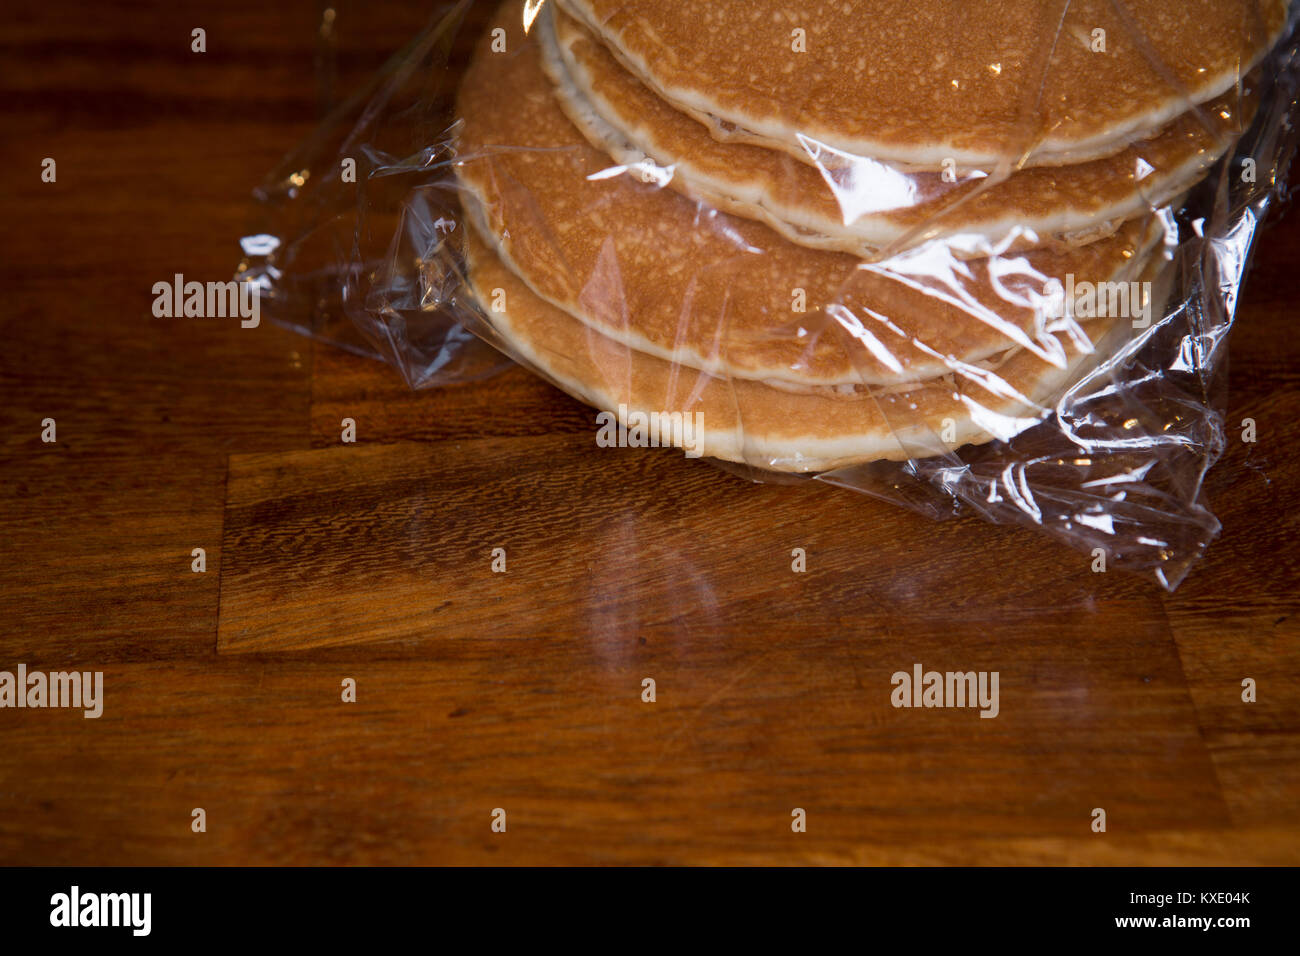 A packet of shop bought pancakes wrapped in cellophane and sitting on a kitchen work surface. - Stock Image